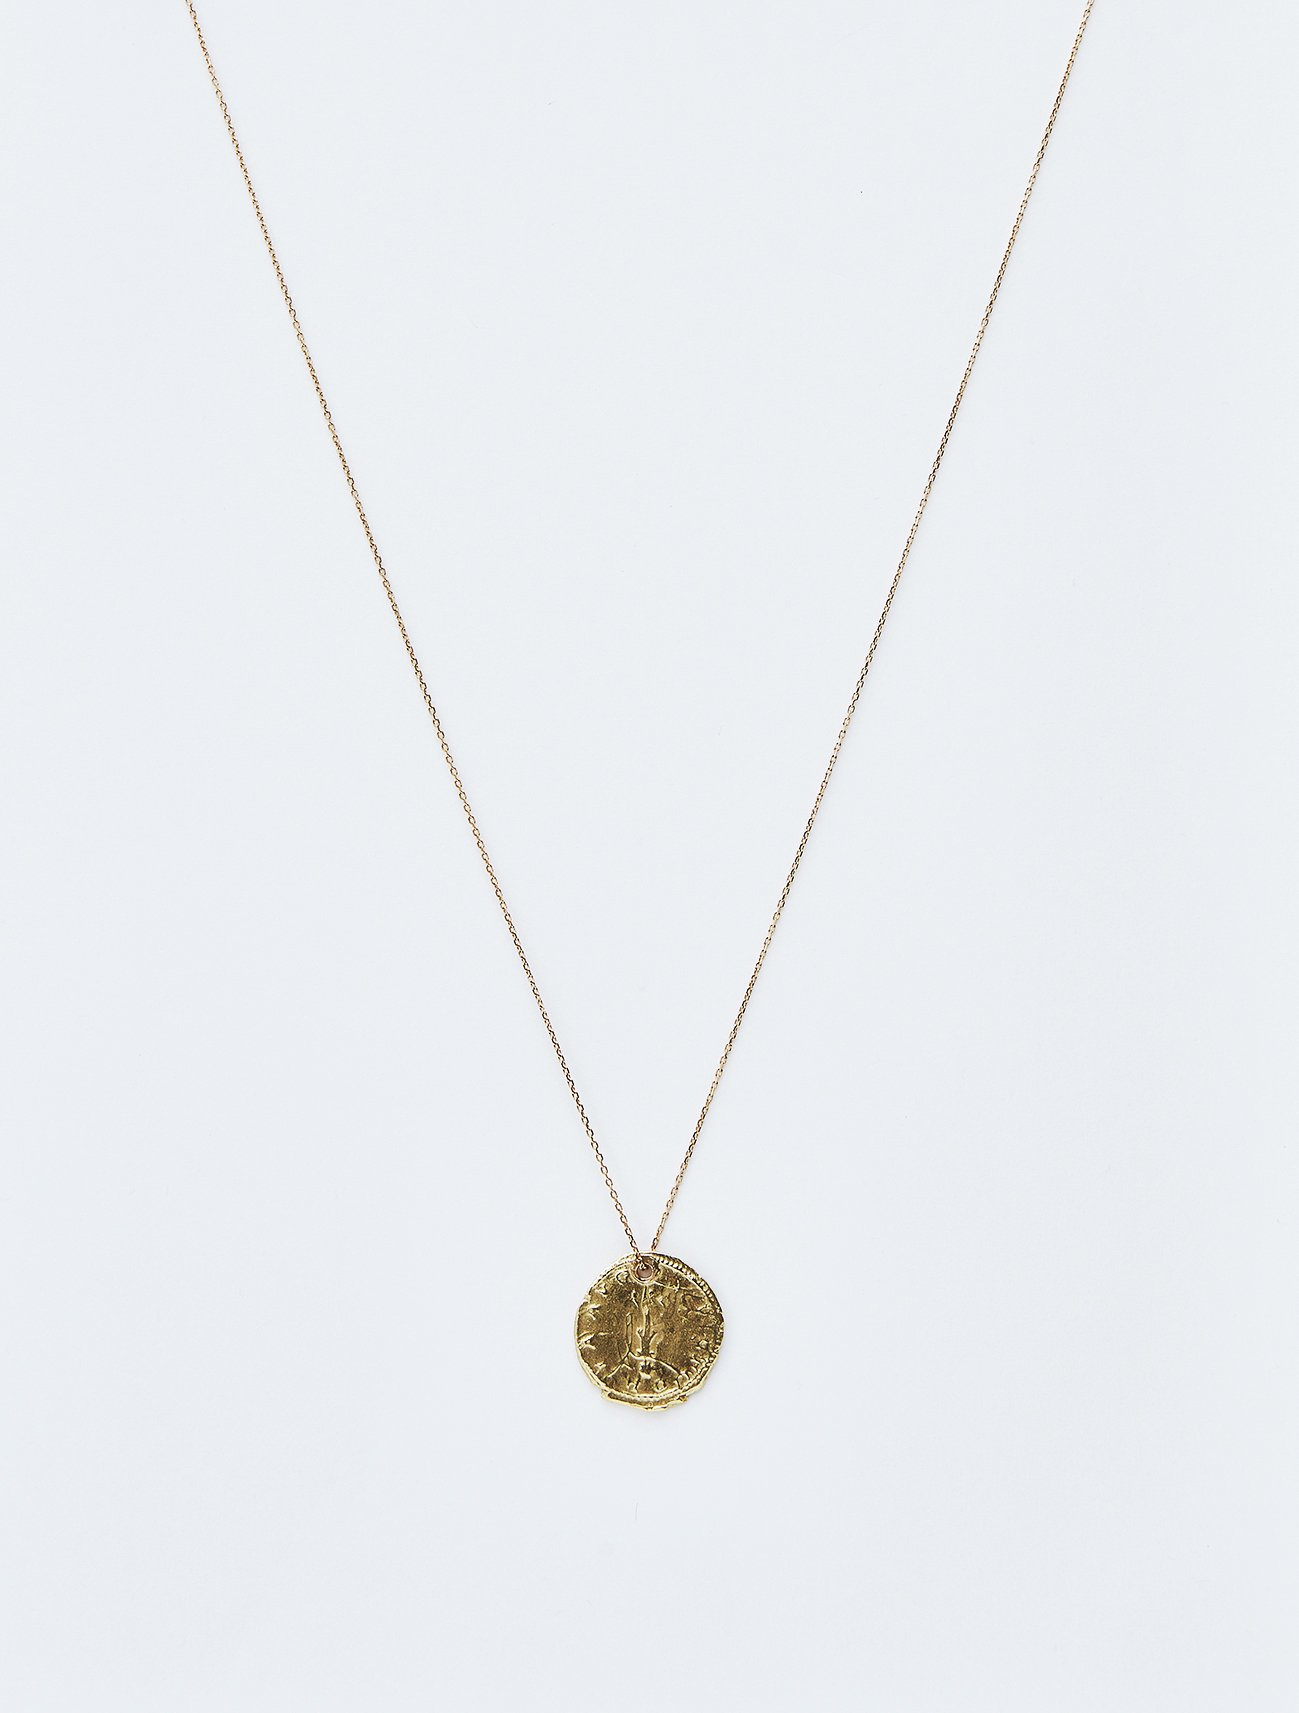 HELIOS / Roman coin necklace / ANTONINIANO